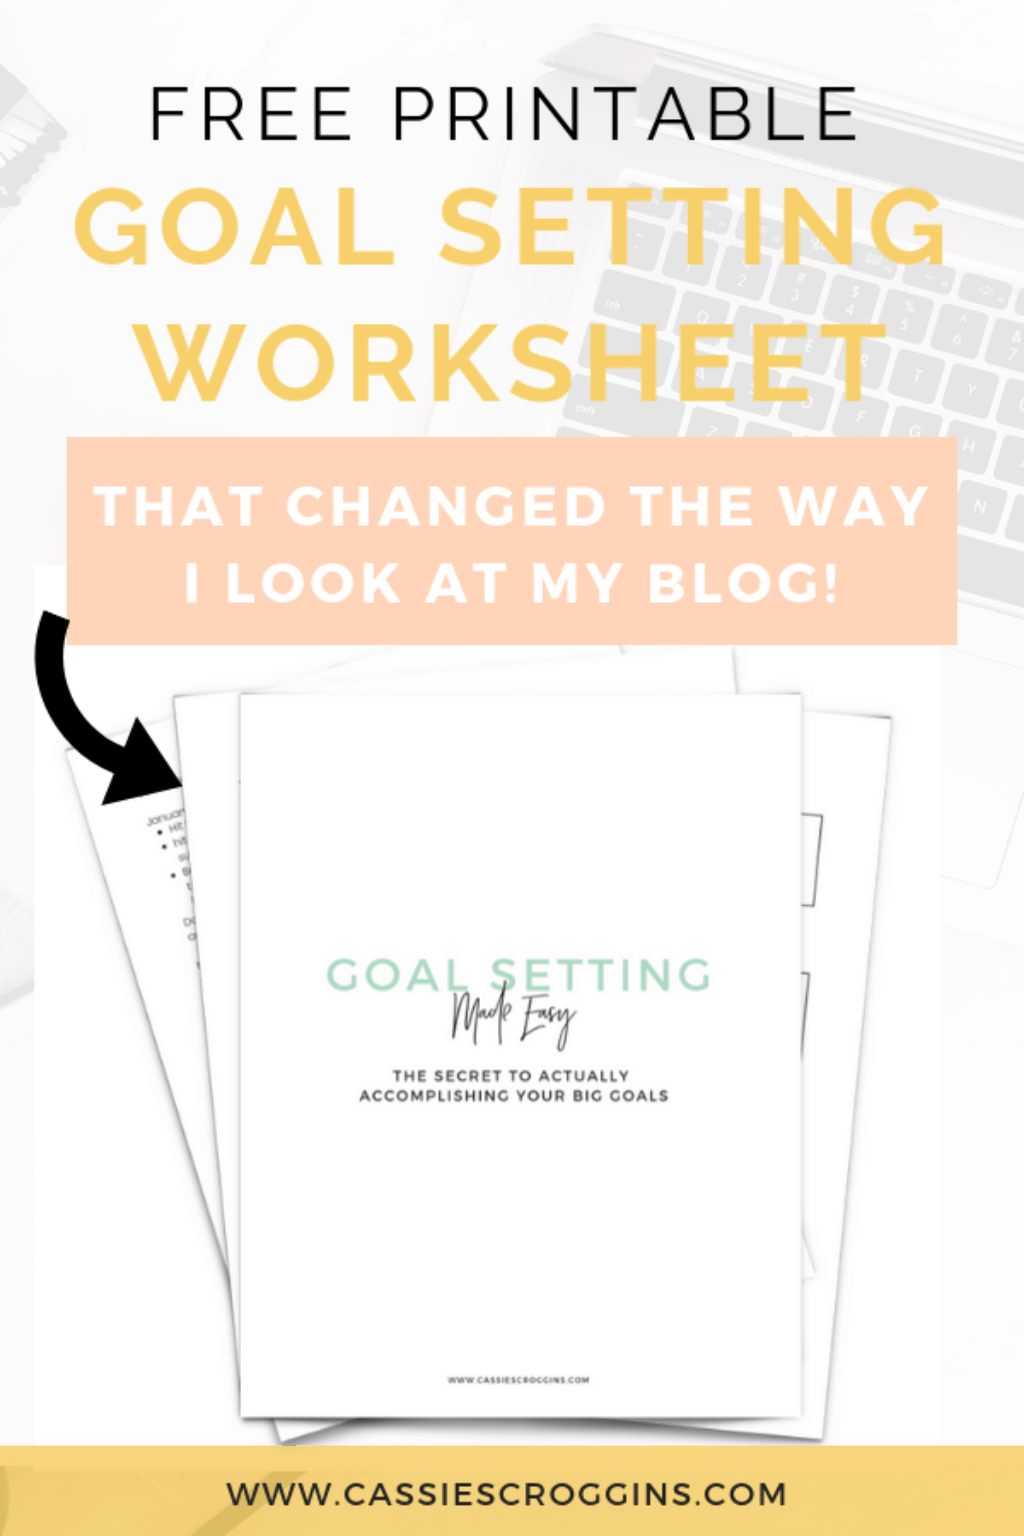 Free Goal Setting Worksheet That Changed The Way I Look At